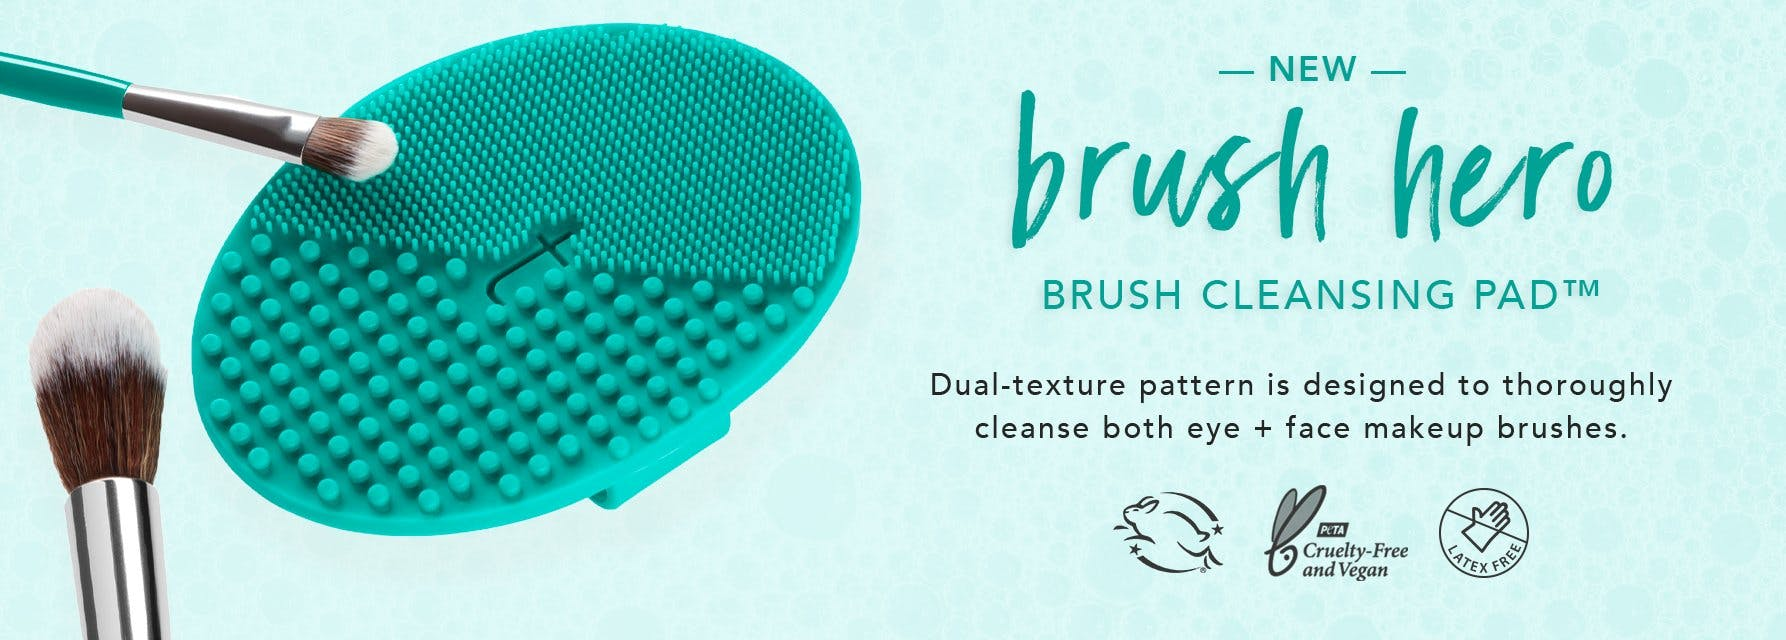 makeup brushes and cleansing pad